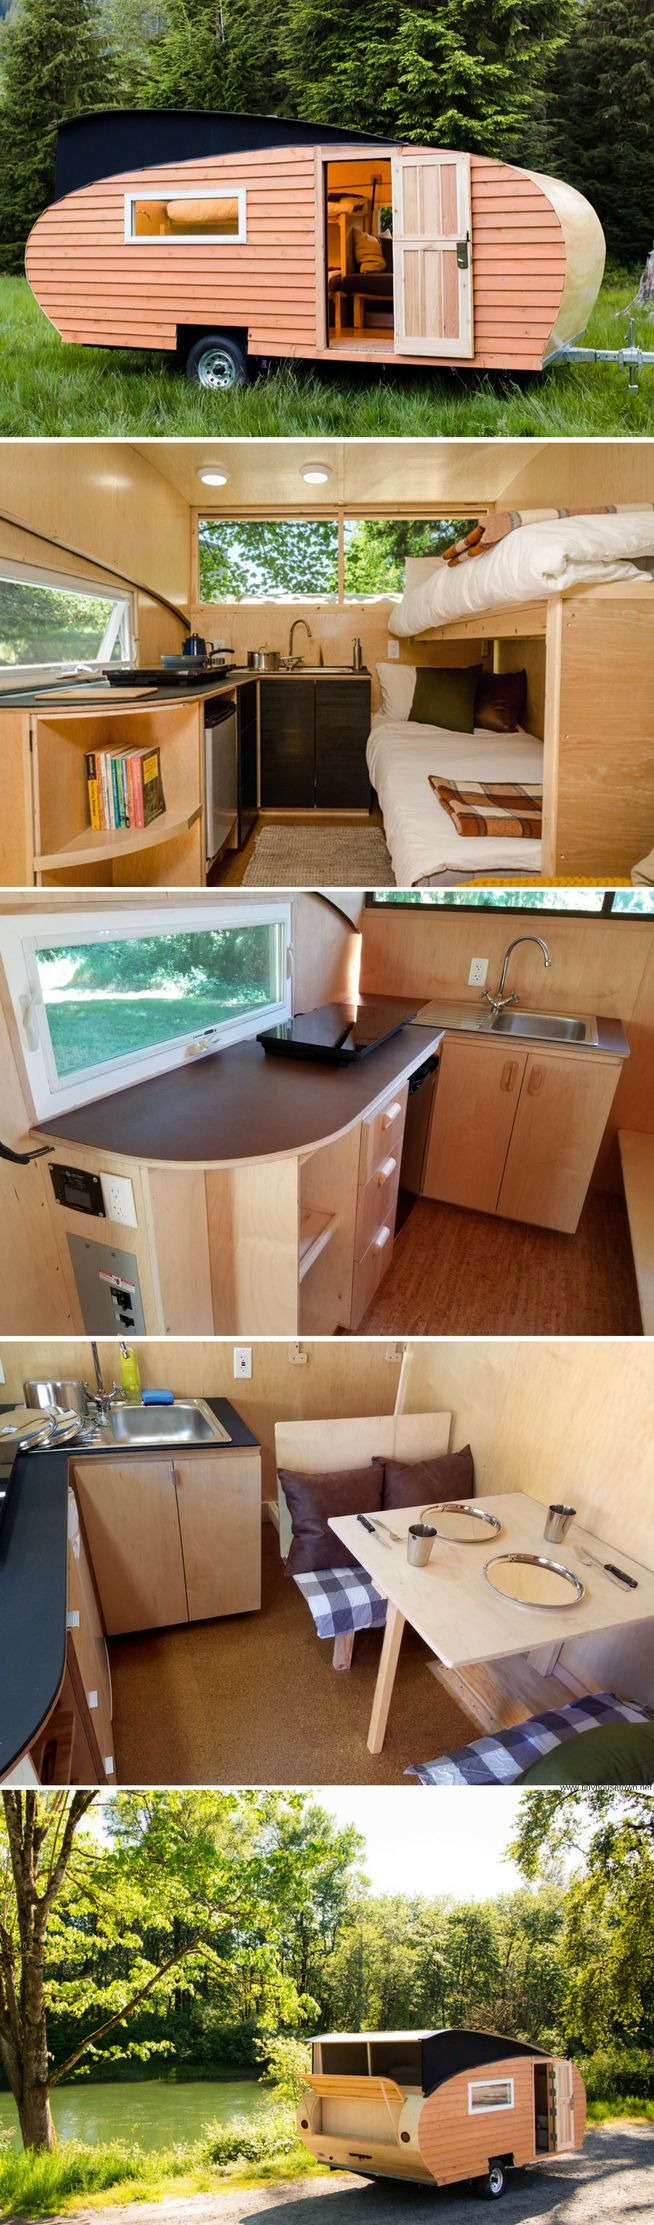 find this pin and more on camper trailers small pop top teardrop - Small Camper Trailer